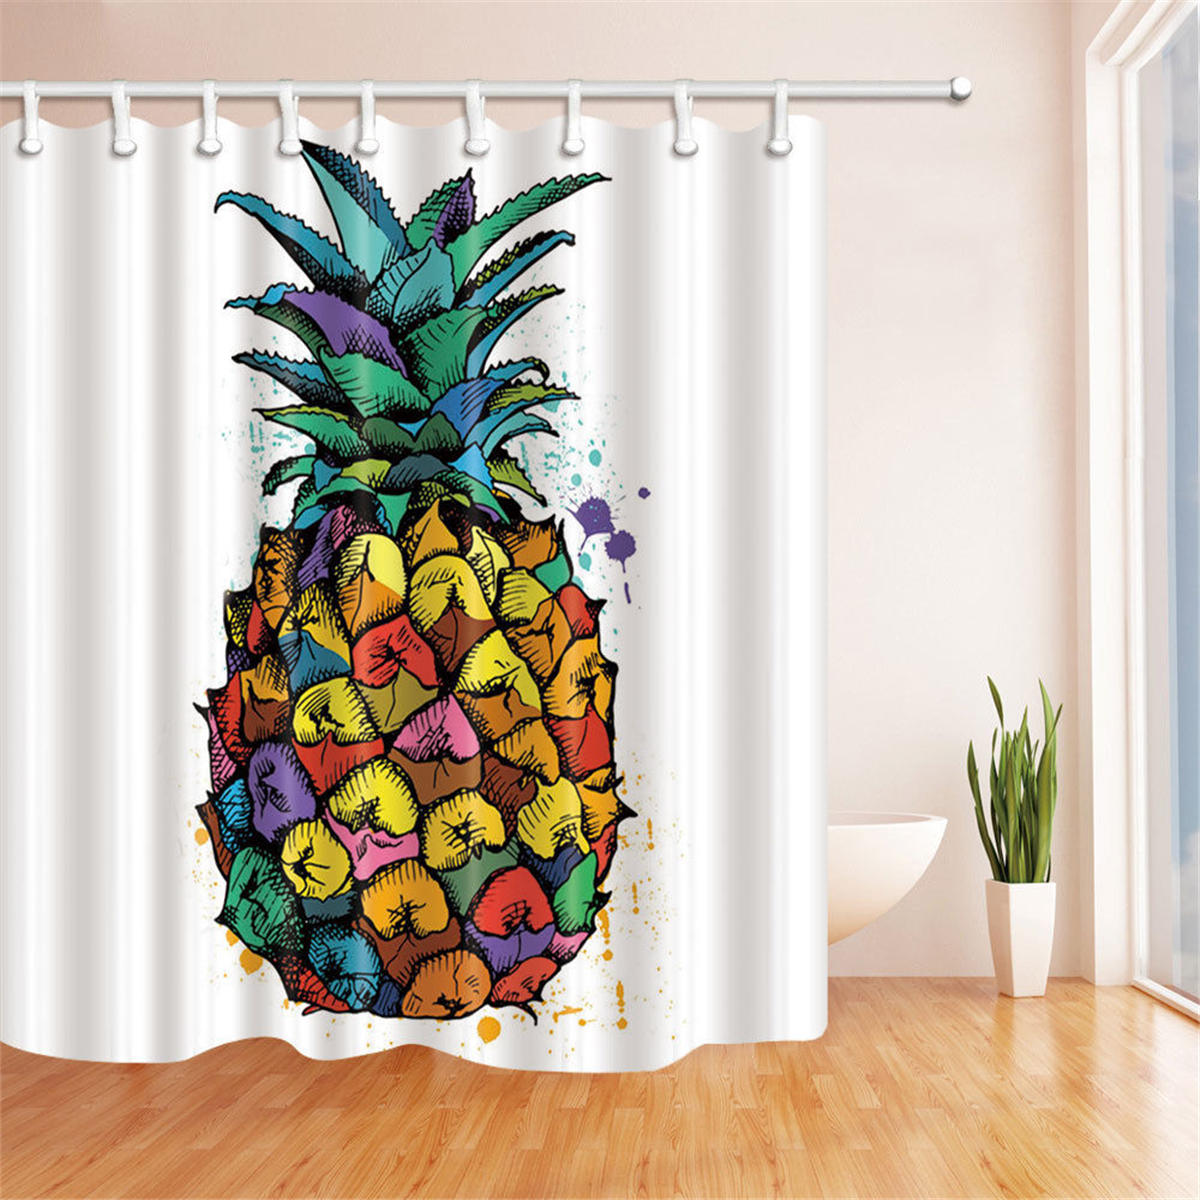 180*180cm Colorful Pineapple Polyester Bathroom Shower Curtain Waterproof Decor with 12 Hooks, Banggood  - buy with discount